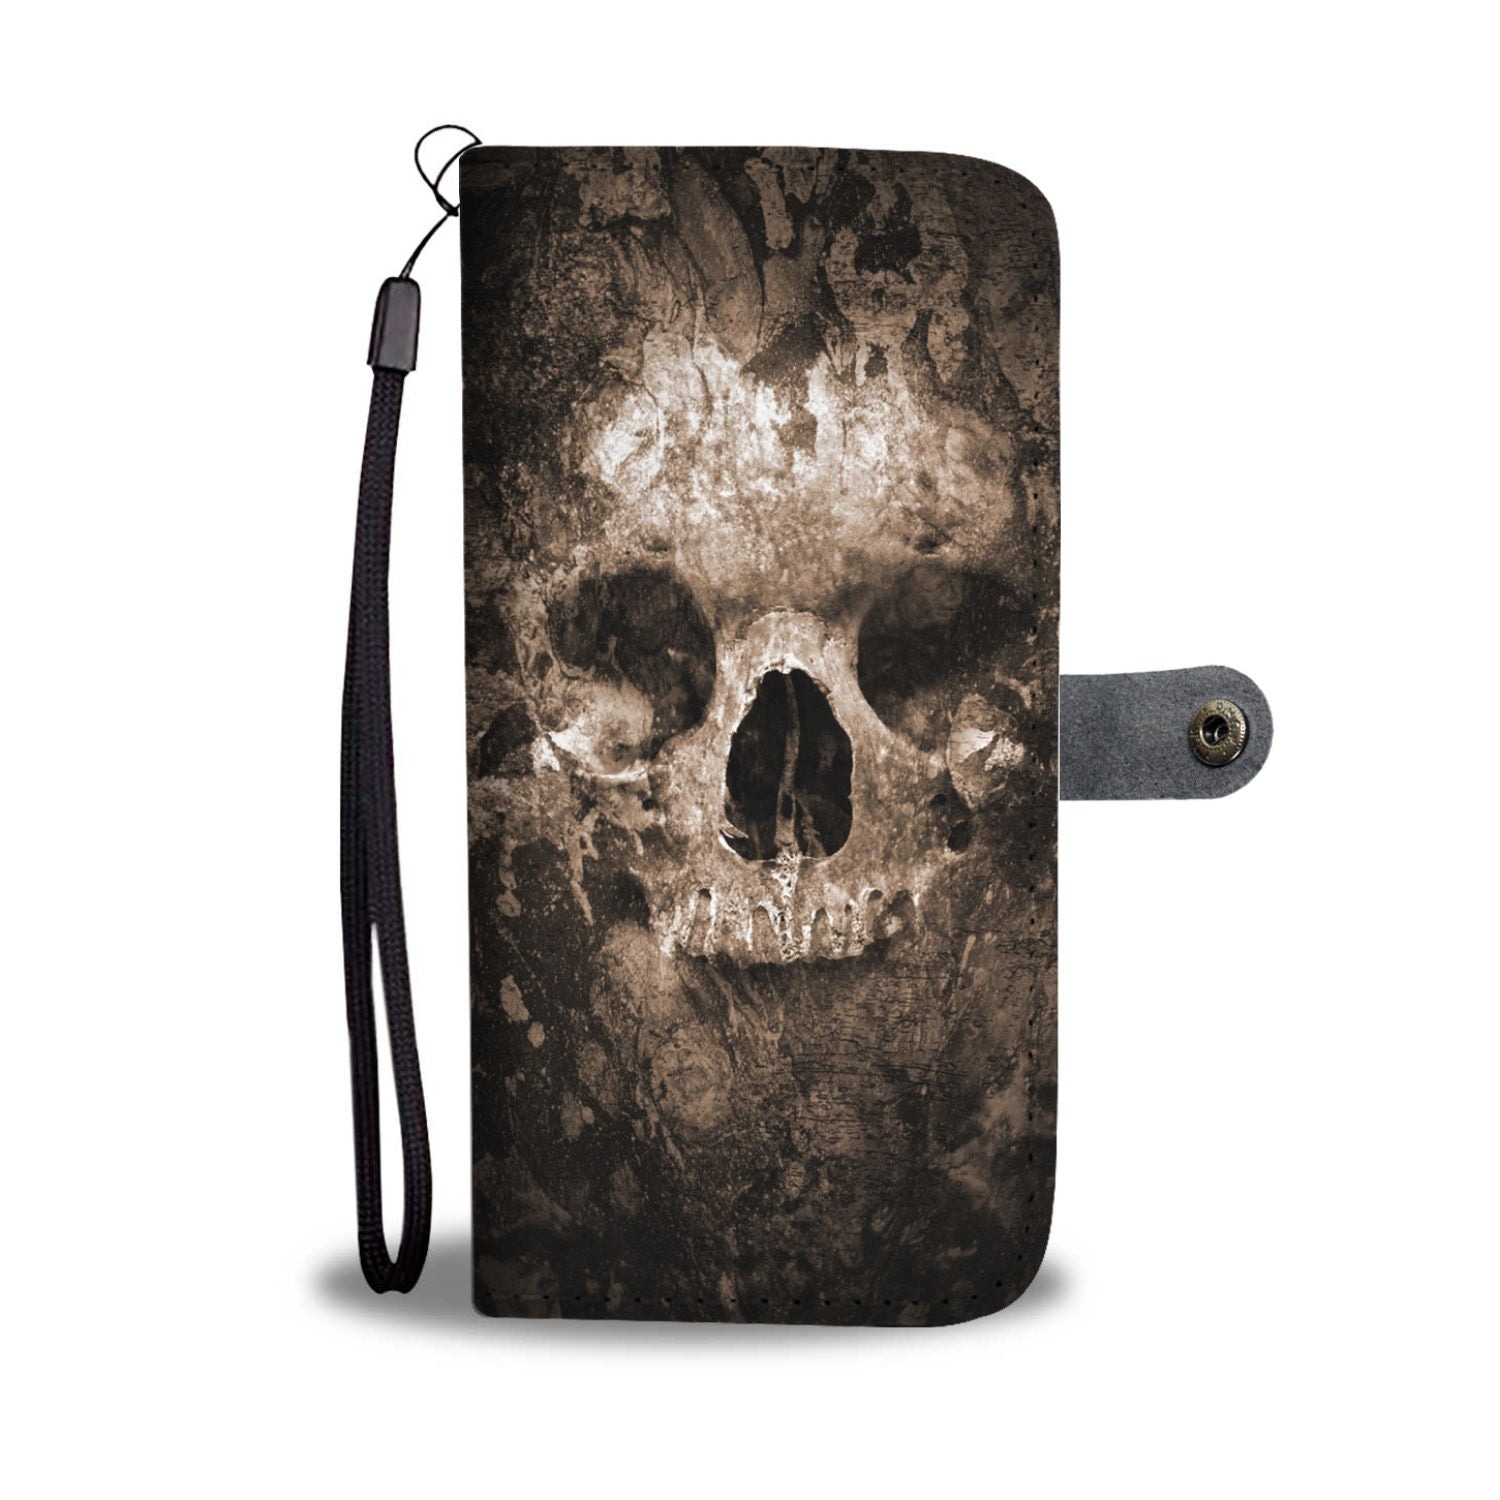 Skull Art Phone Wallet Case 009